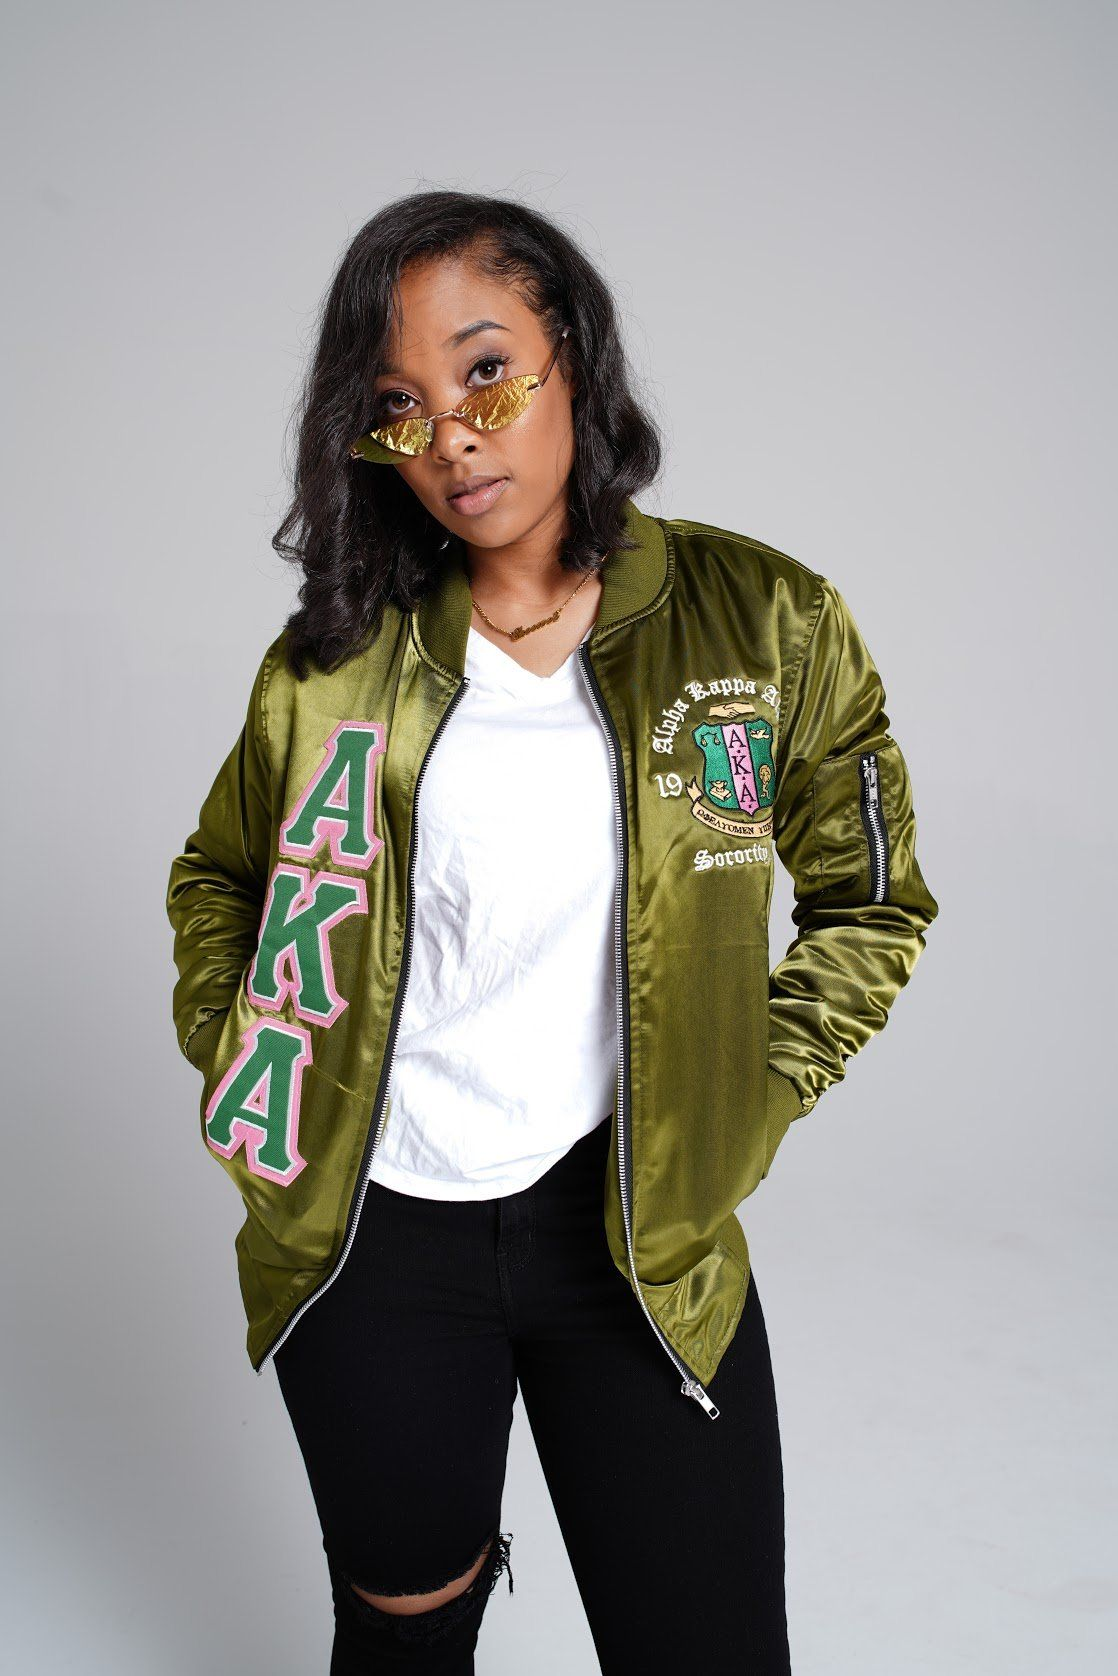 A Divine Creations Original And Exclusive Satin Bomber Jacket Satin On The Outside And Satin On The Inside Bomber Jacket Satin Bomber Jacket Black Girl Shirts [ 1676 x 1118 Pixel ]